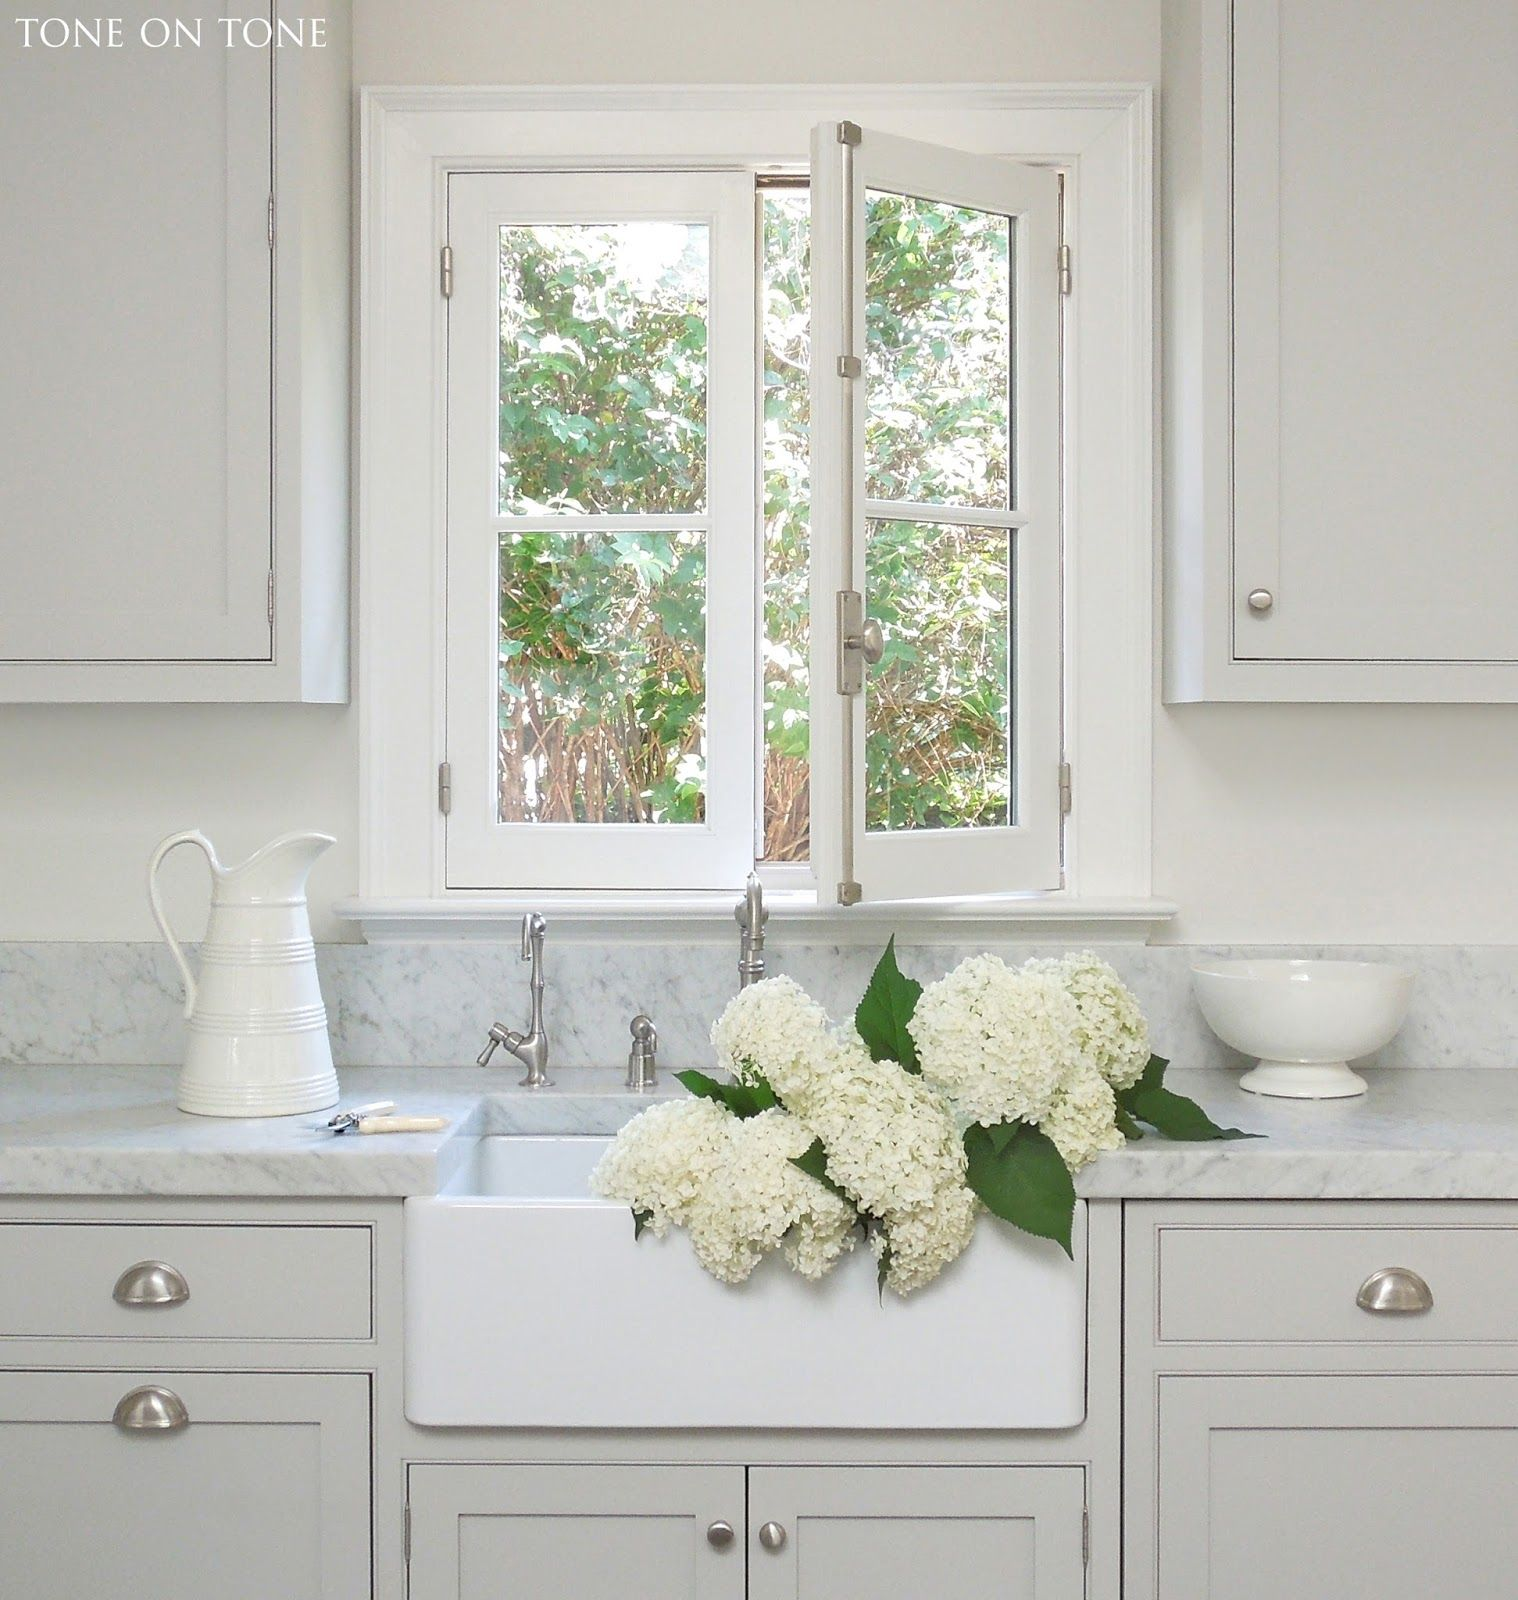 Window under kitchen cabinets  tone on tone our kitchen with gray cabinets farm sink and